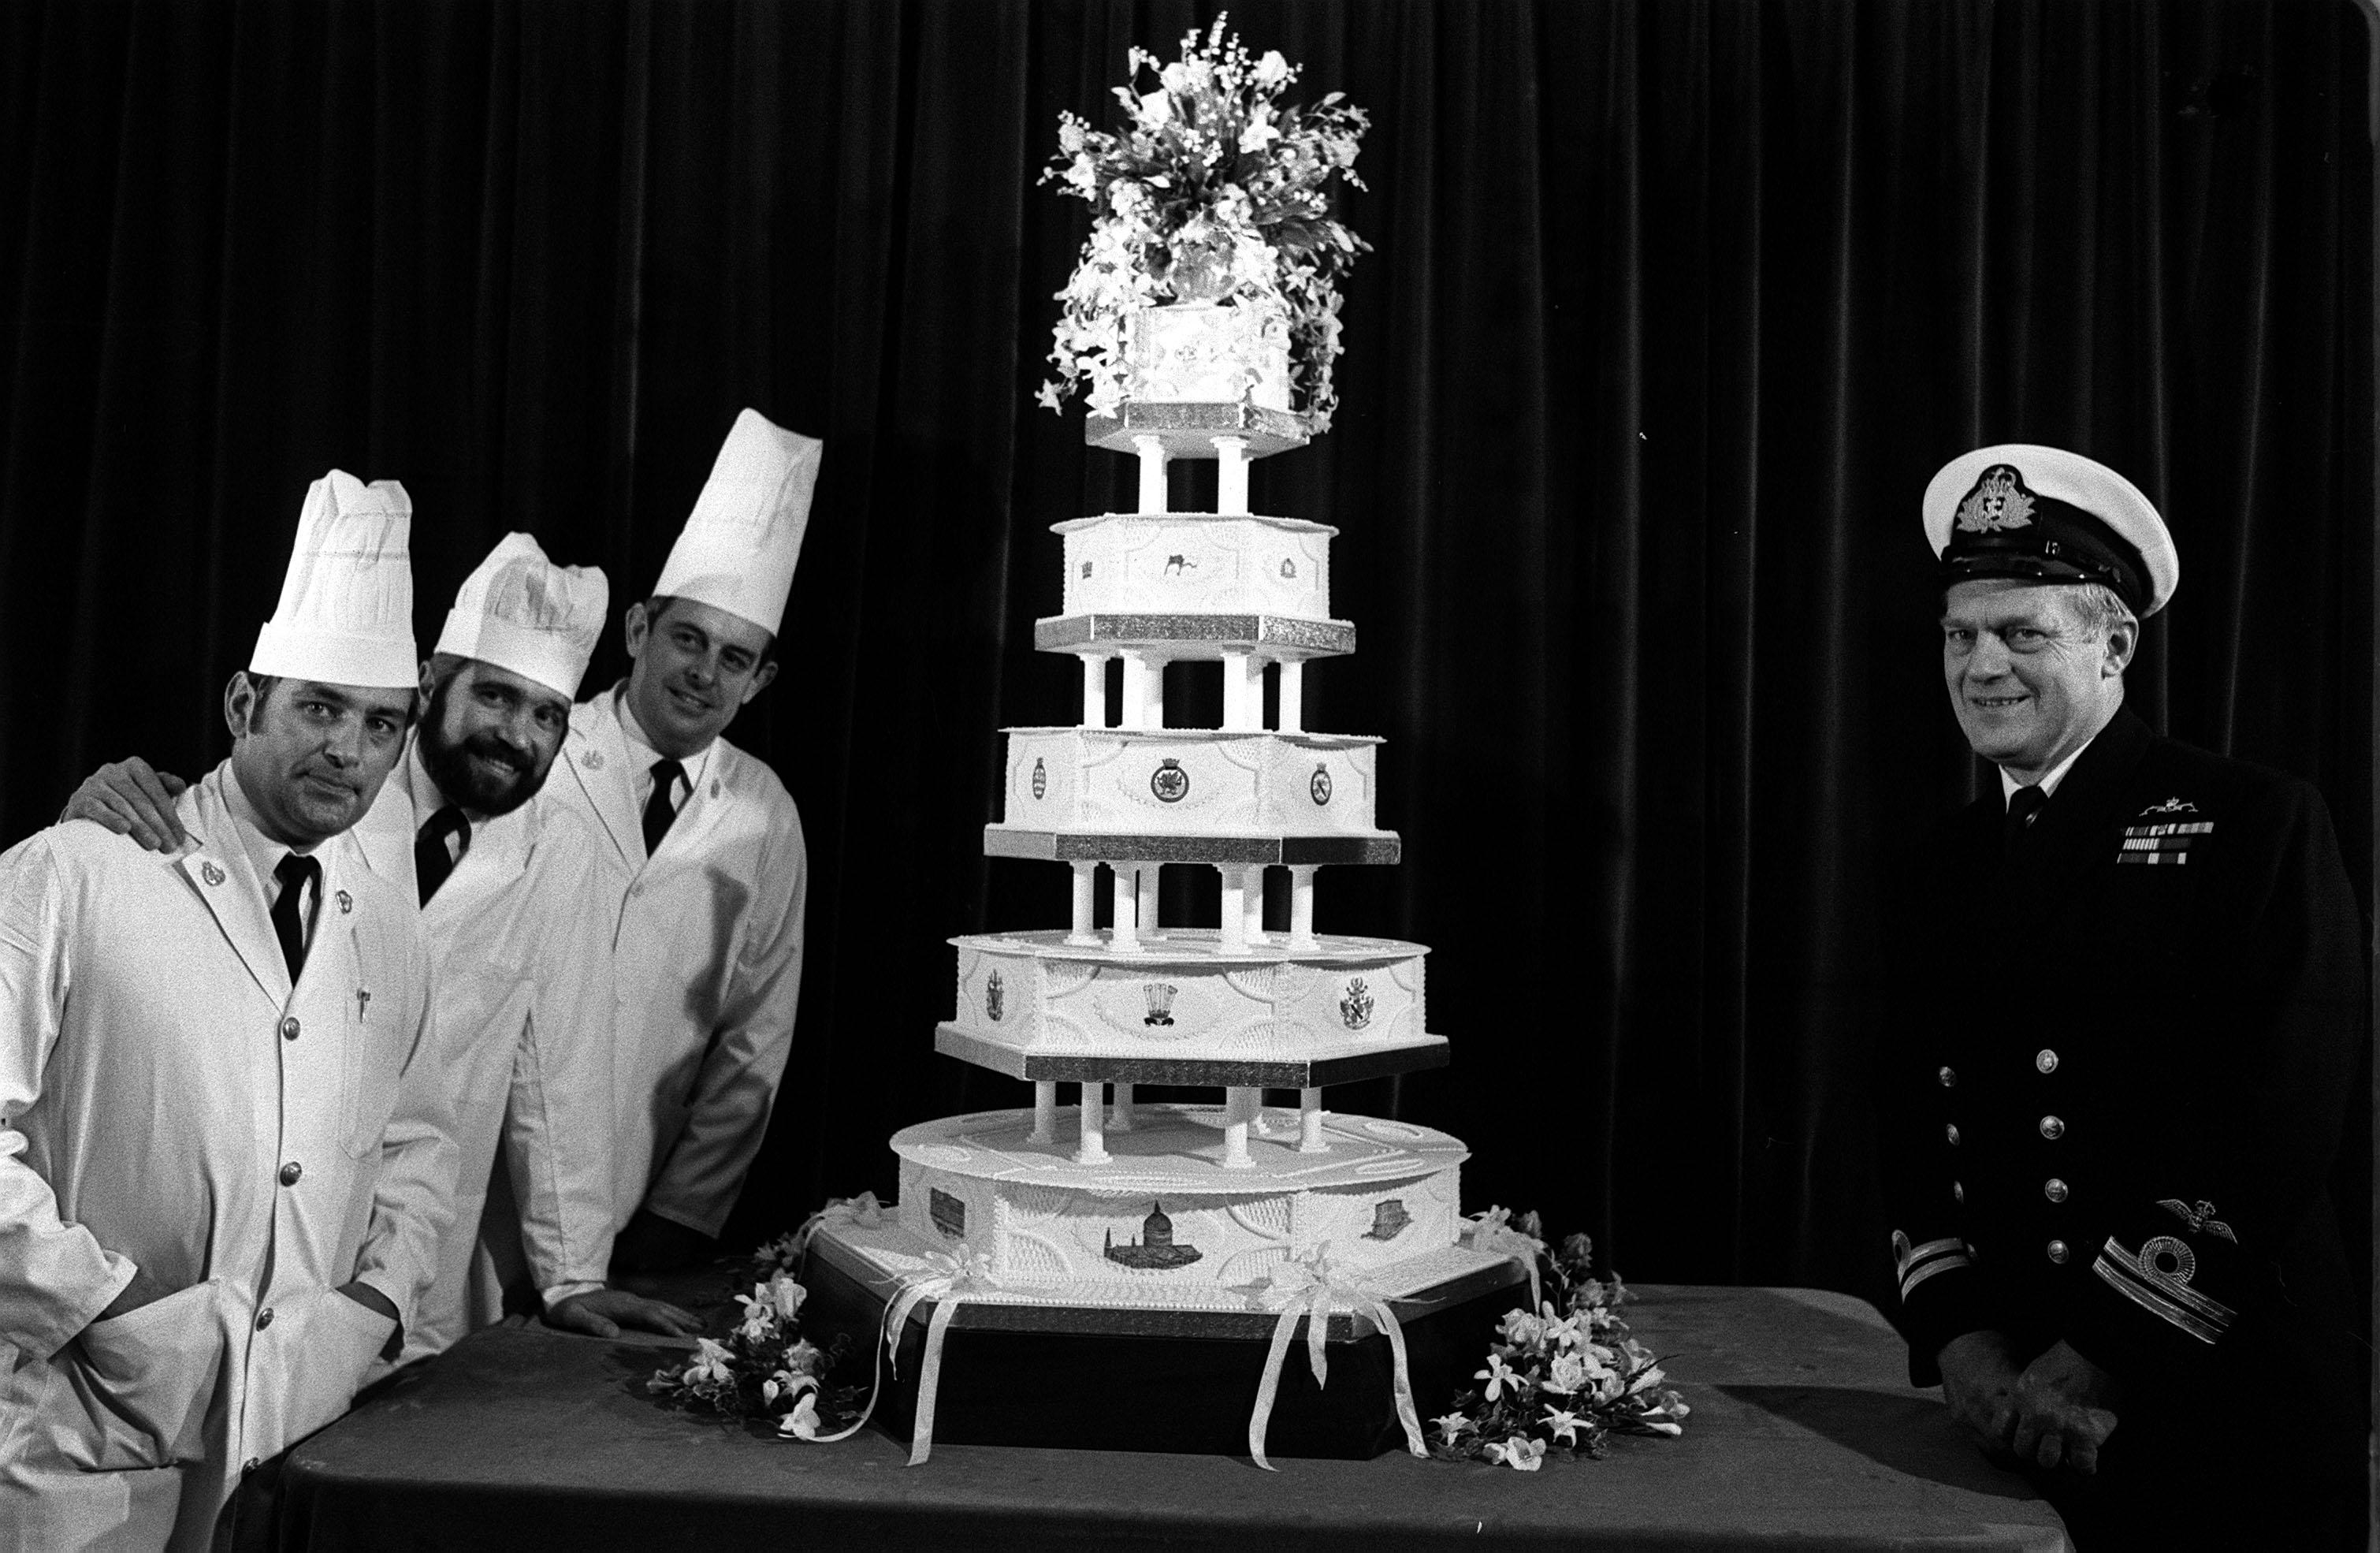 The official royal wedding cake for Diana Spencer and Prince Charles made by the Royal Navy's Cookery School 5 ft high and 255 ilbs hms Pembroke in Chatham